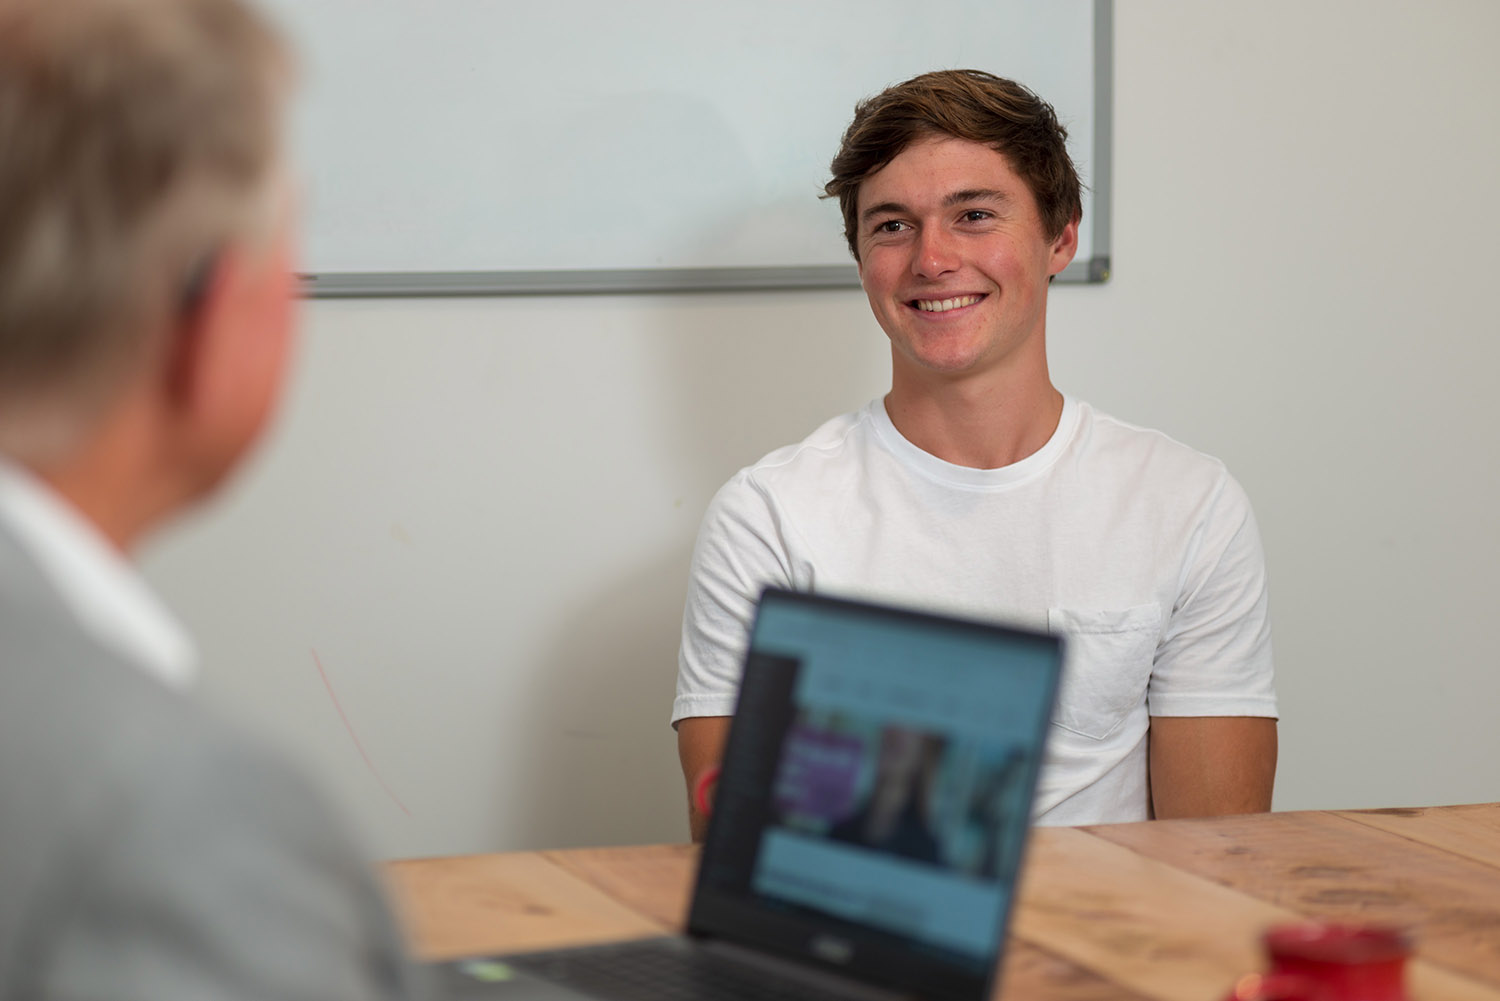 Stephen and mature male student in a training room discussing career options in a career planning session